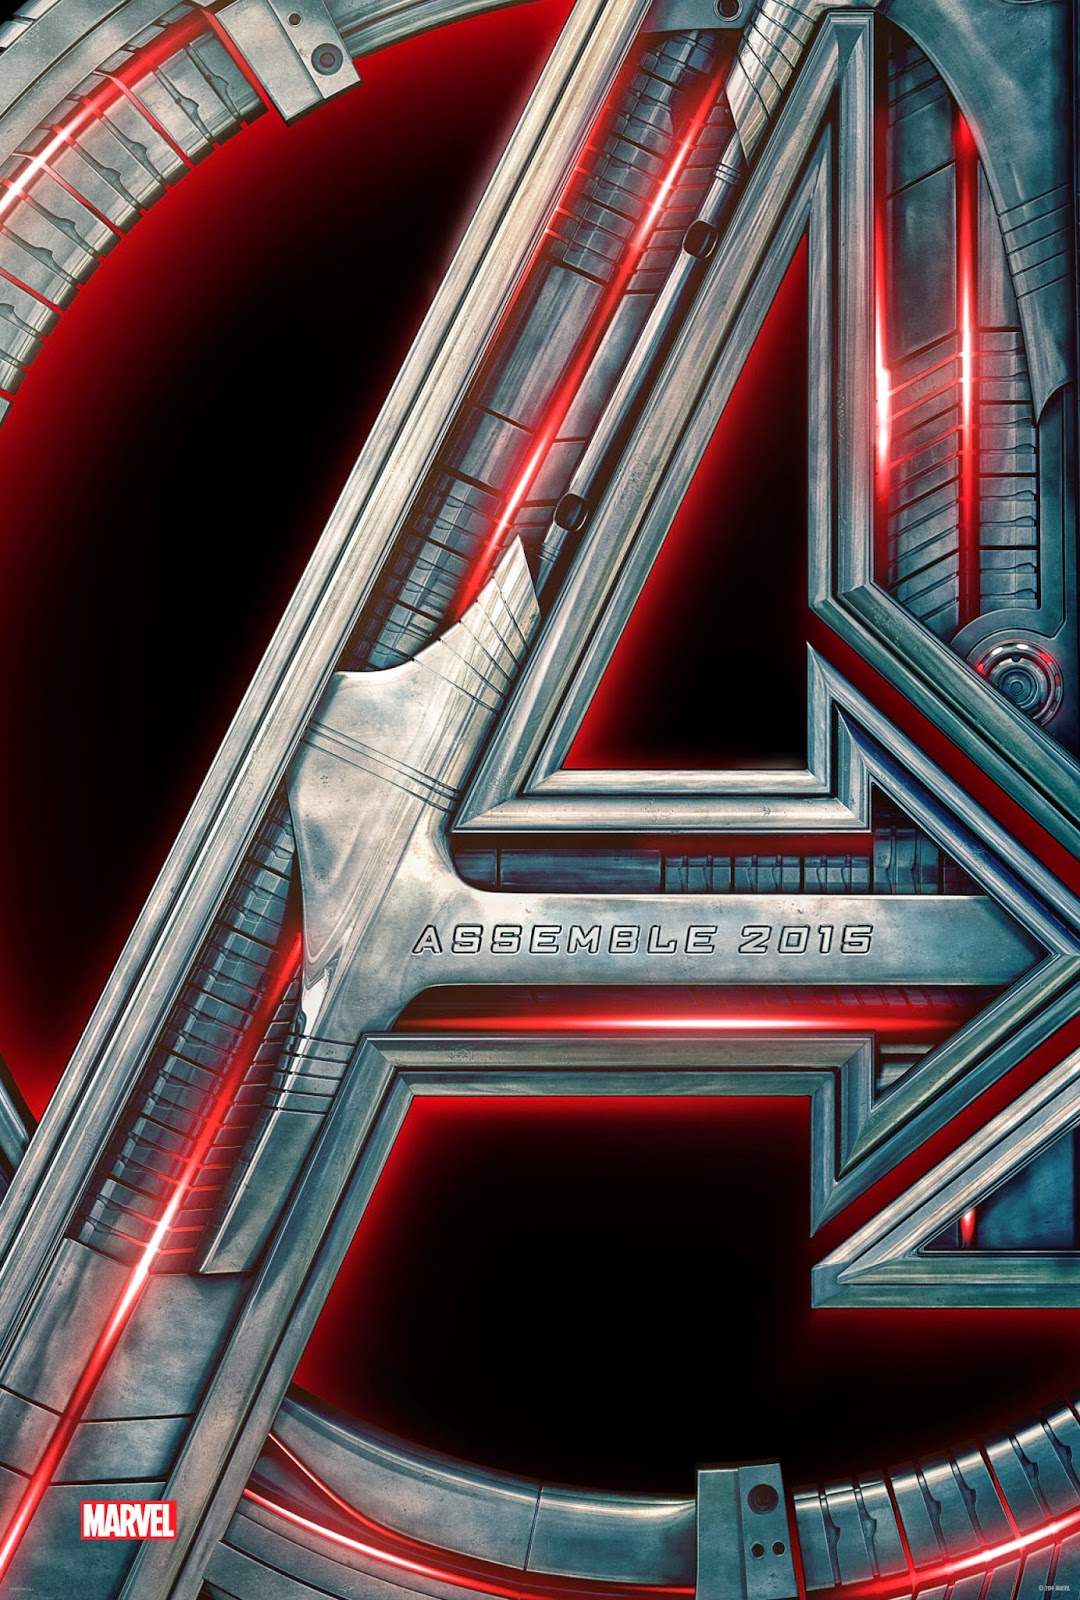 The Avengers:  Age of Ultron Teaser Poster